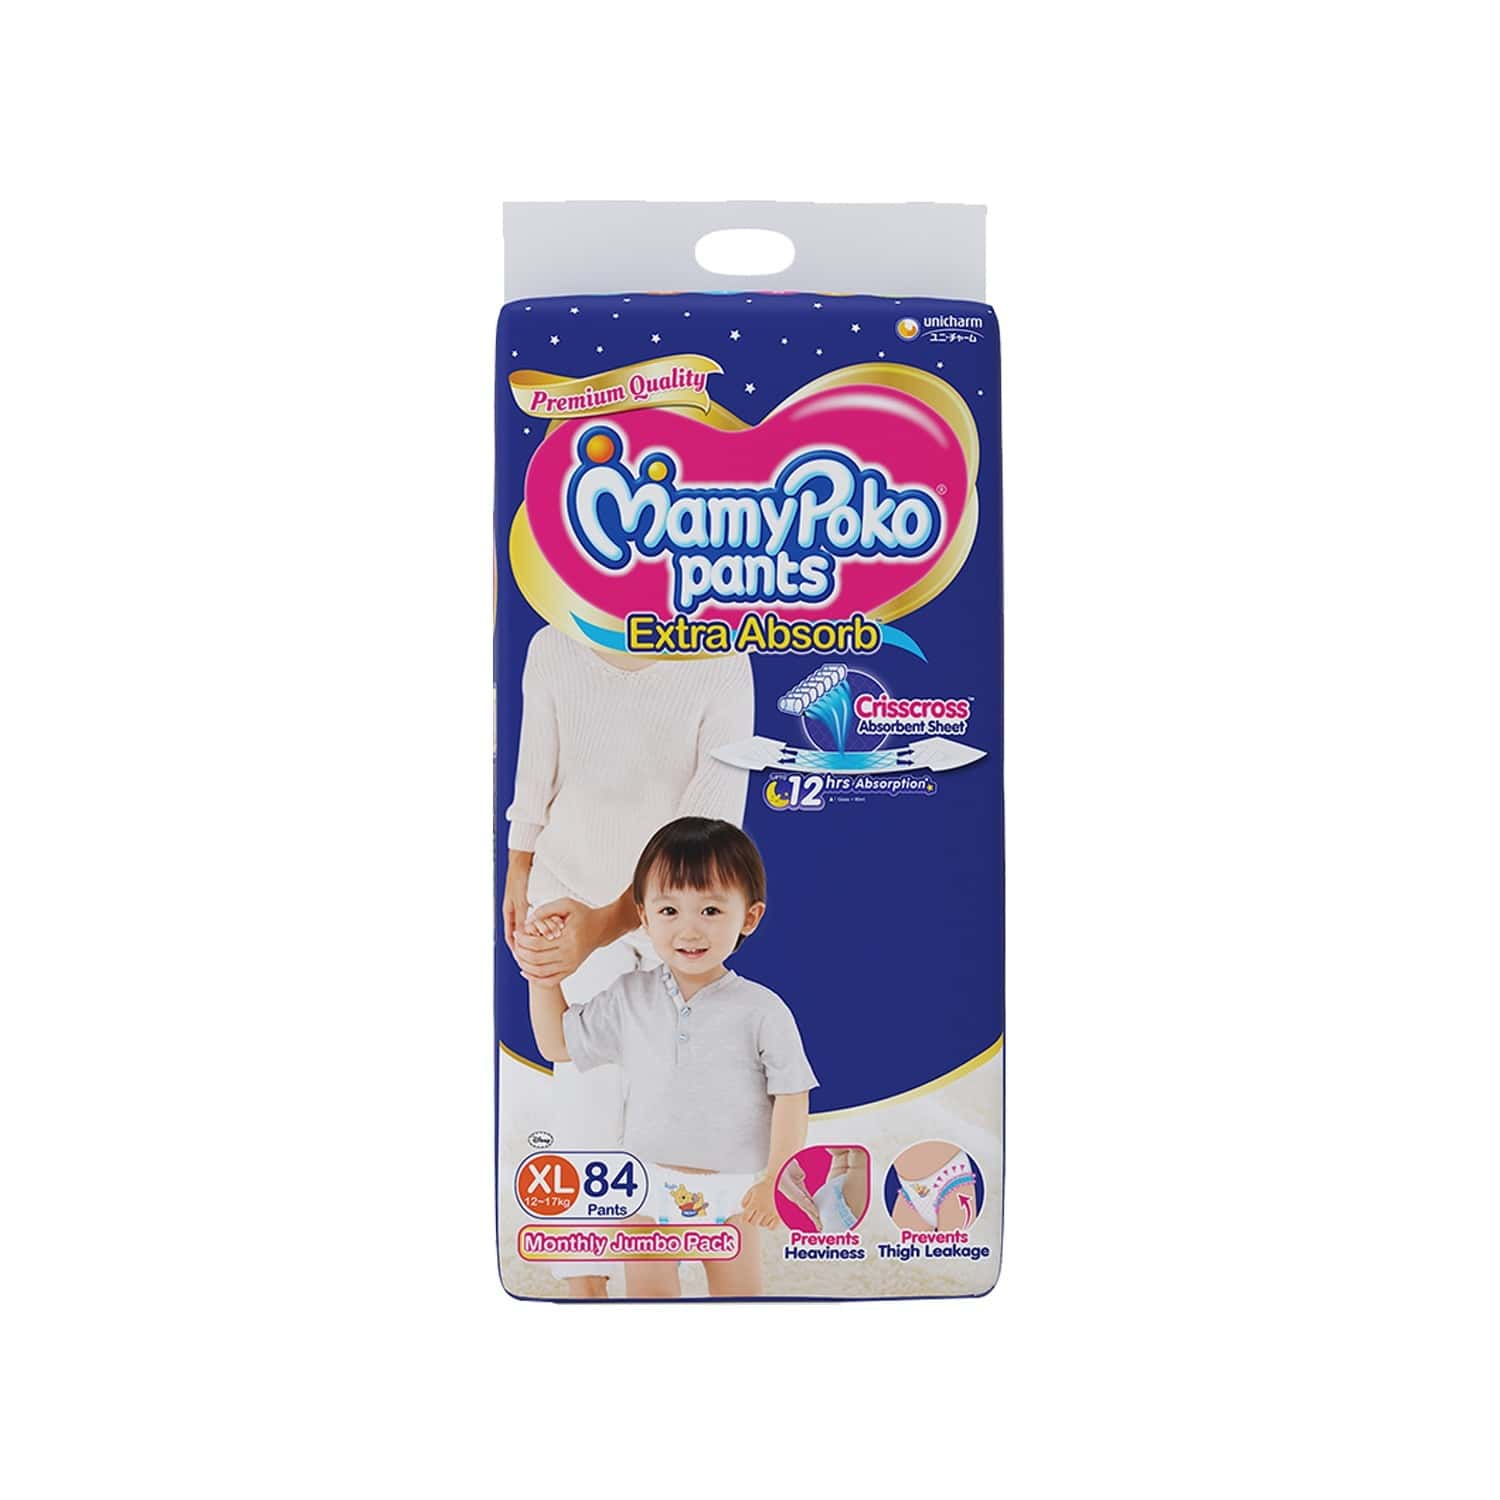 Mamypoko Pants Extra Absorb Diaper -monthly Jumbo Pack- Extra- Large Size, Pack Of 84 Diapers (xl-84)